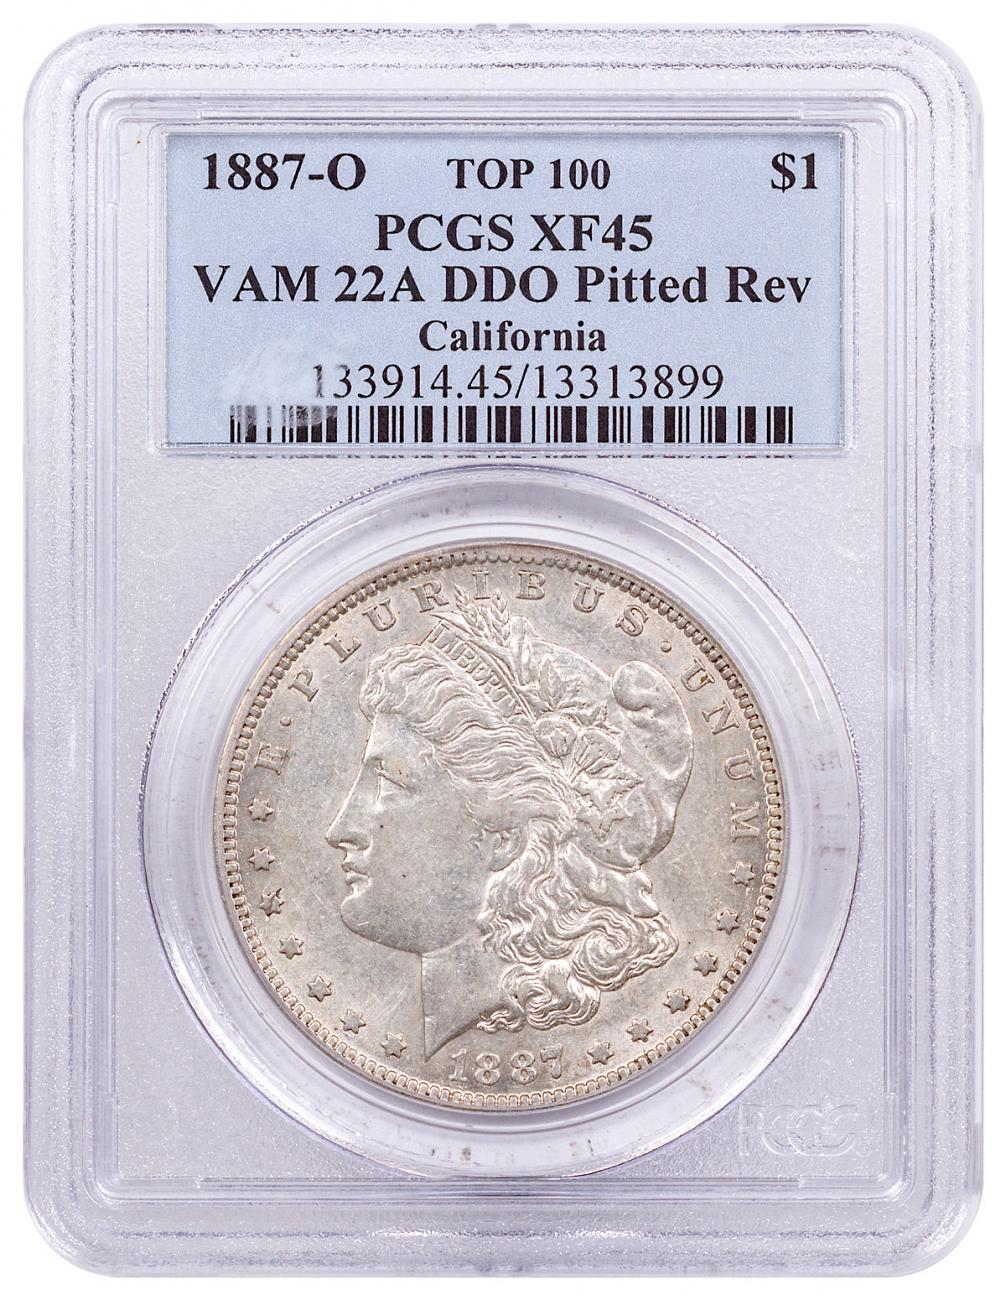 1887-O Morgan Silver Dollar Top 100 PCGS XF45 VAM-22A DDO Pitted Reverse California